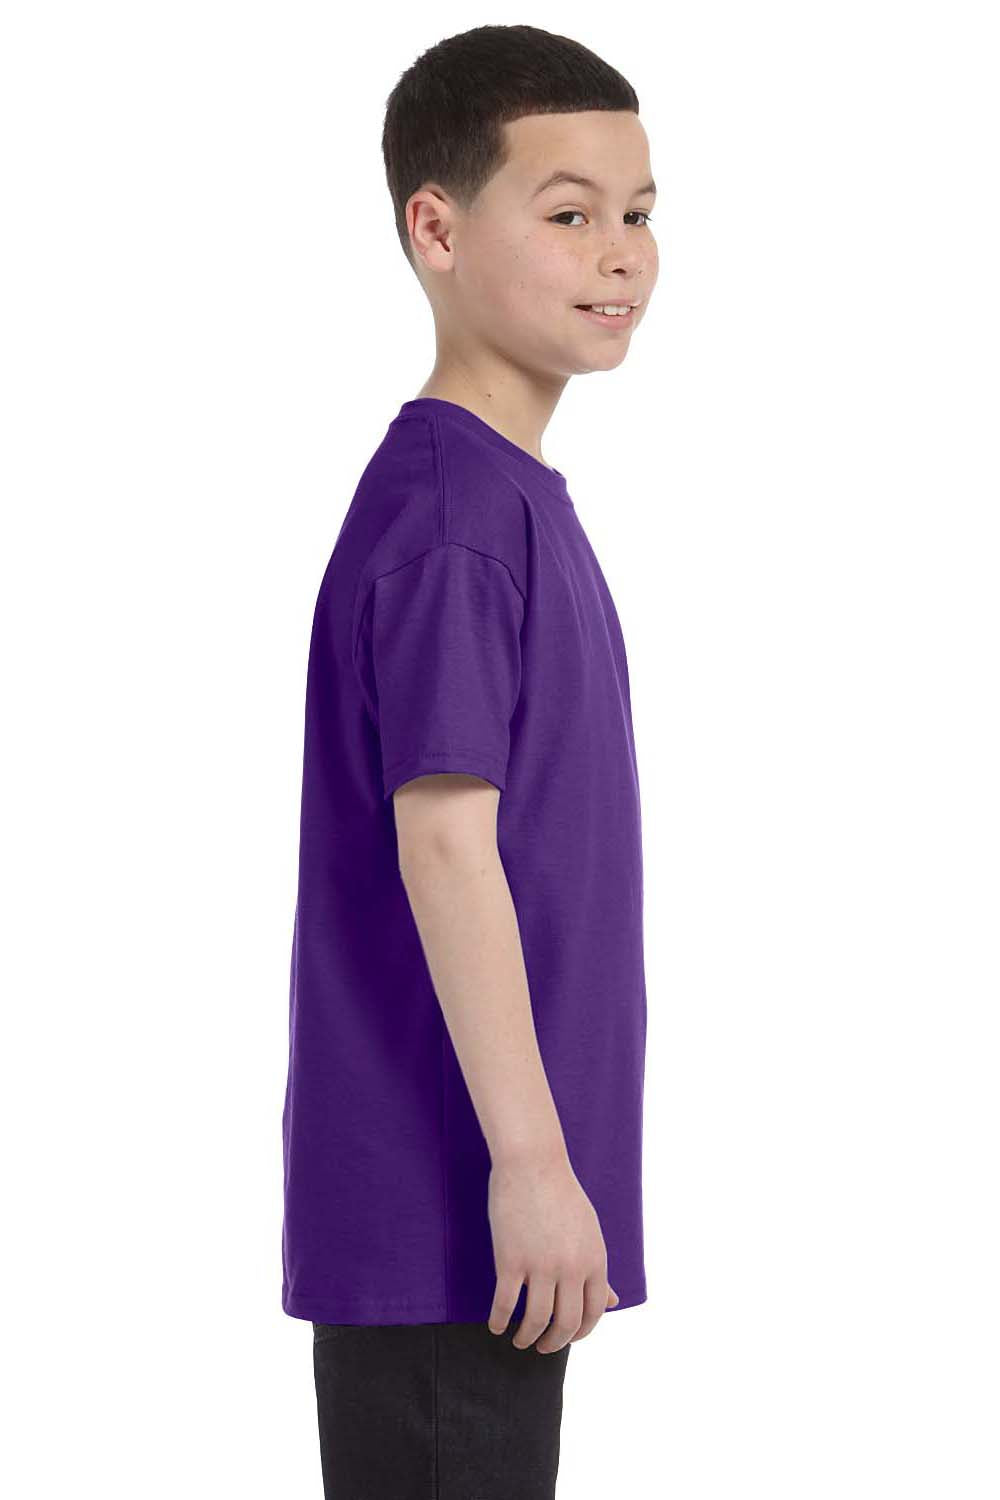 Hanes 54500 Youth ComfortSoft Short Sleeve Crewneck T-Shirt Purple Side